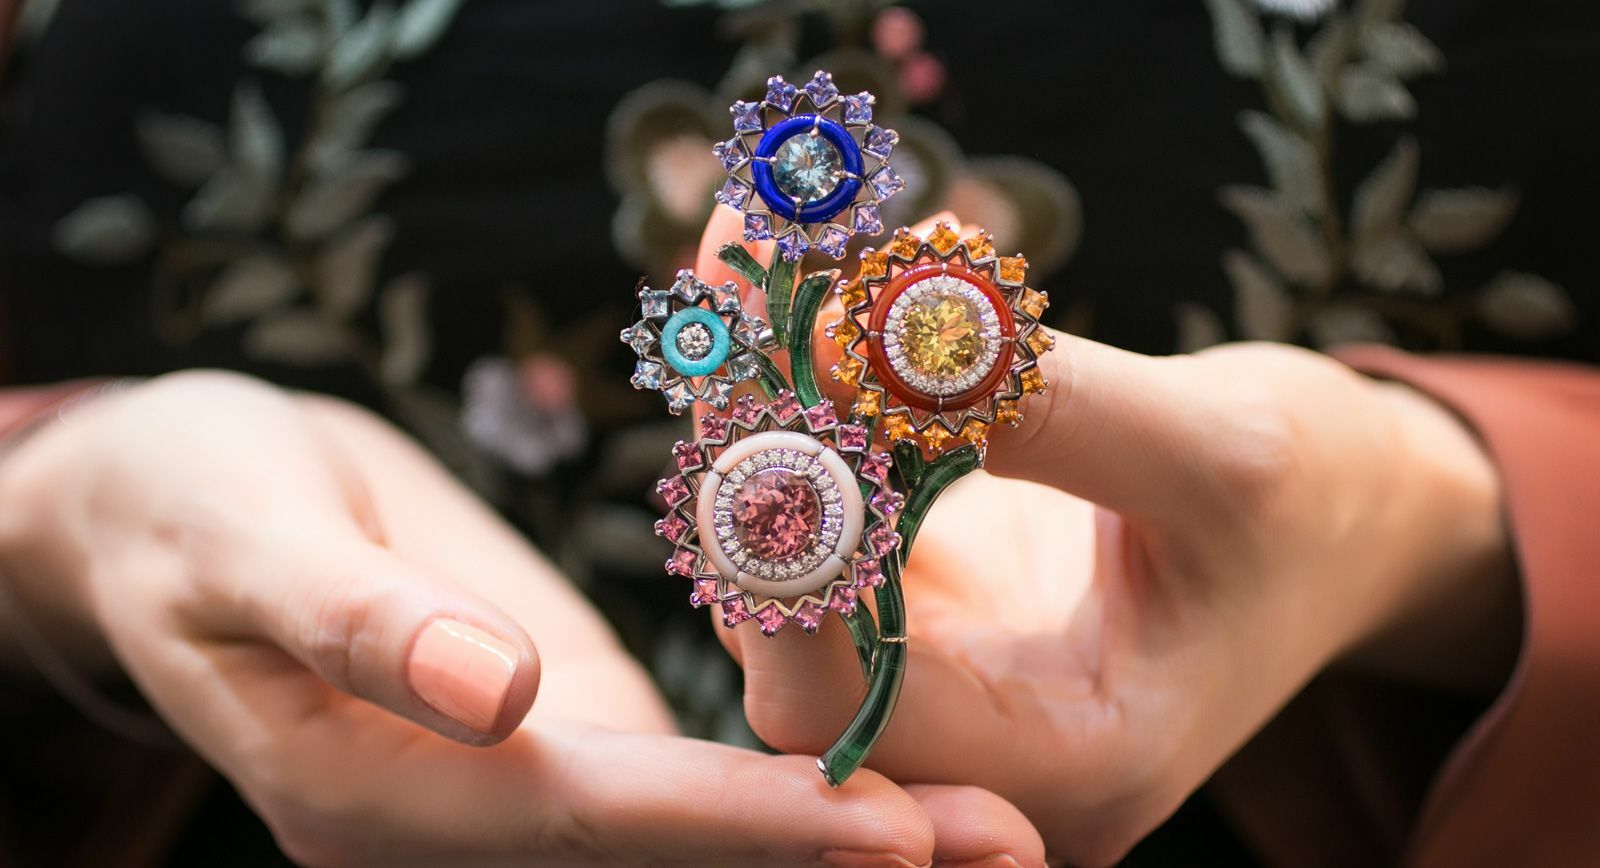 Carlo Barberis flower gemstone brooch